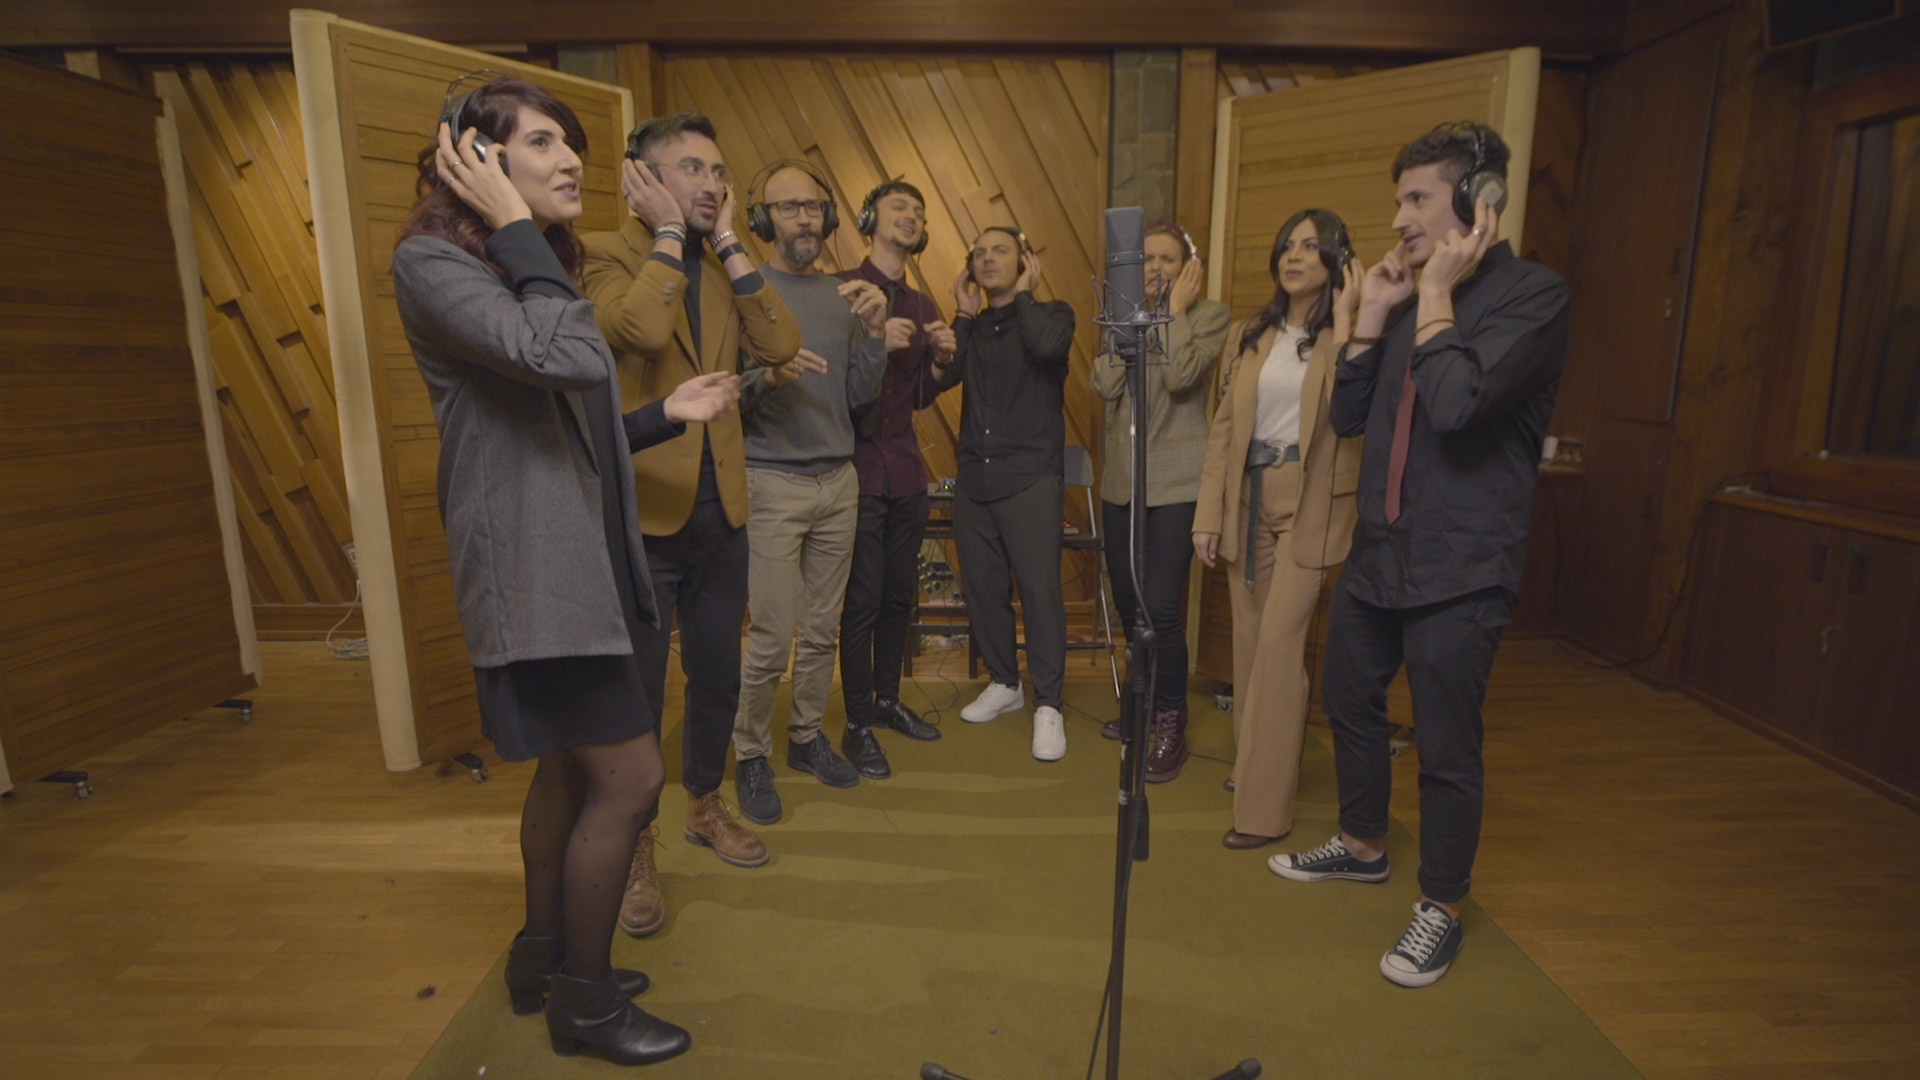 All I Want for Christmas is you – Slum Band – Natale 2019